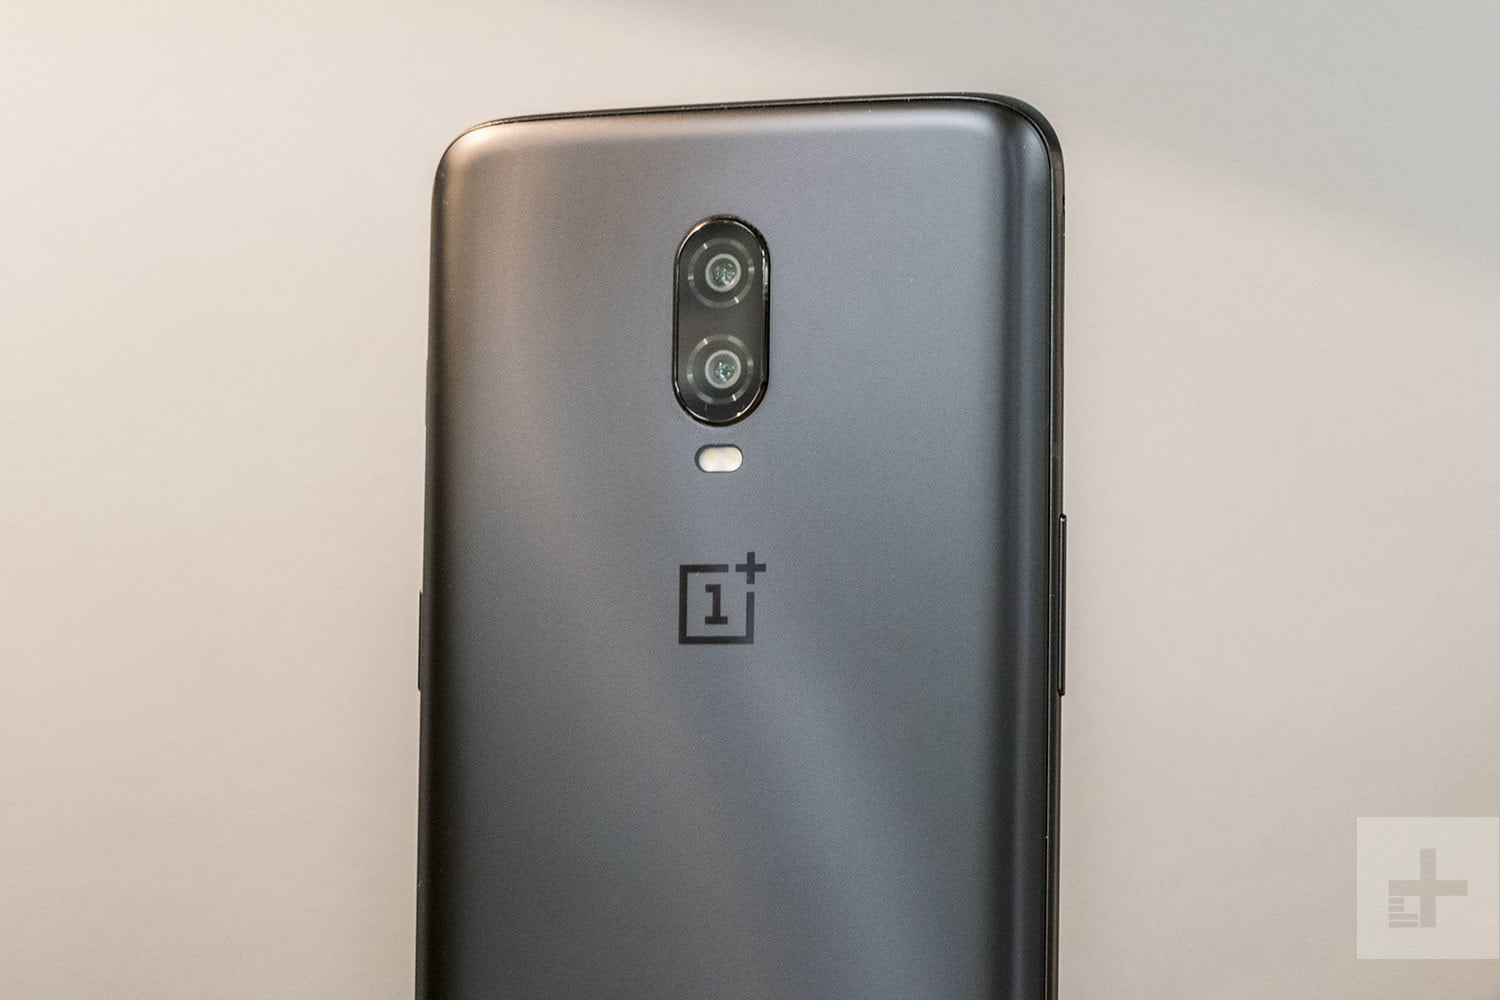 OnePlus 6T Review: All of the Good Stuff, None of the Bad